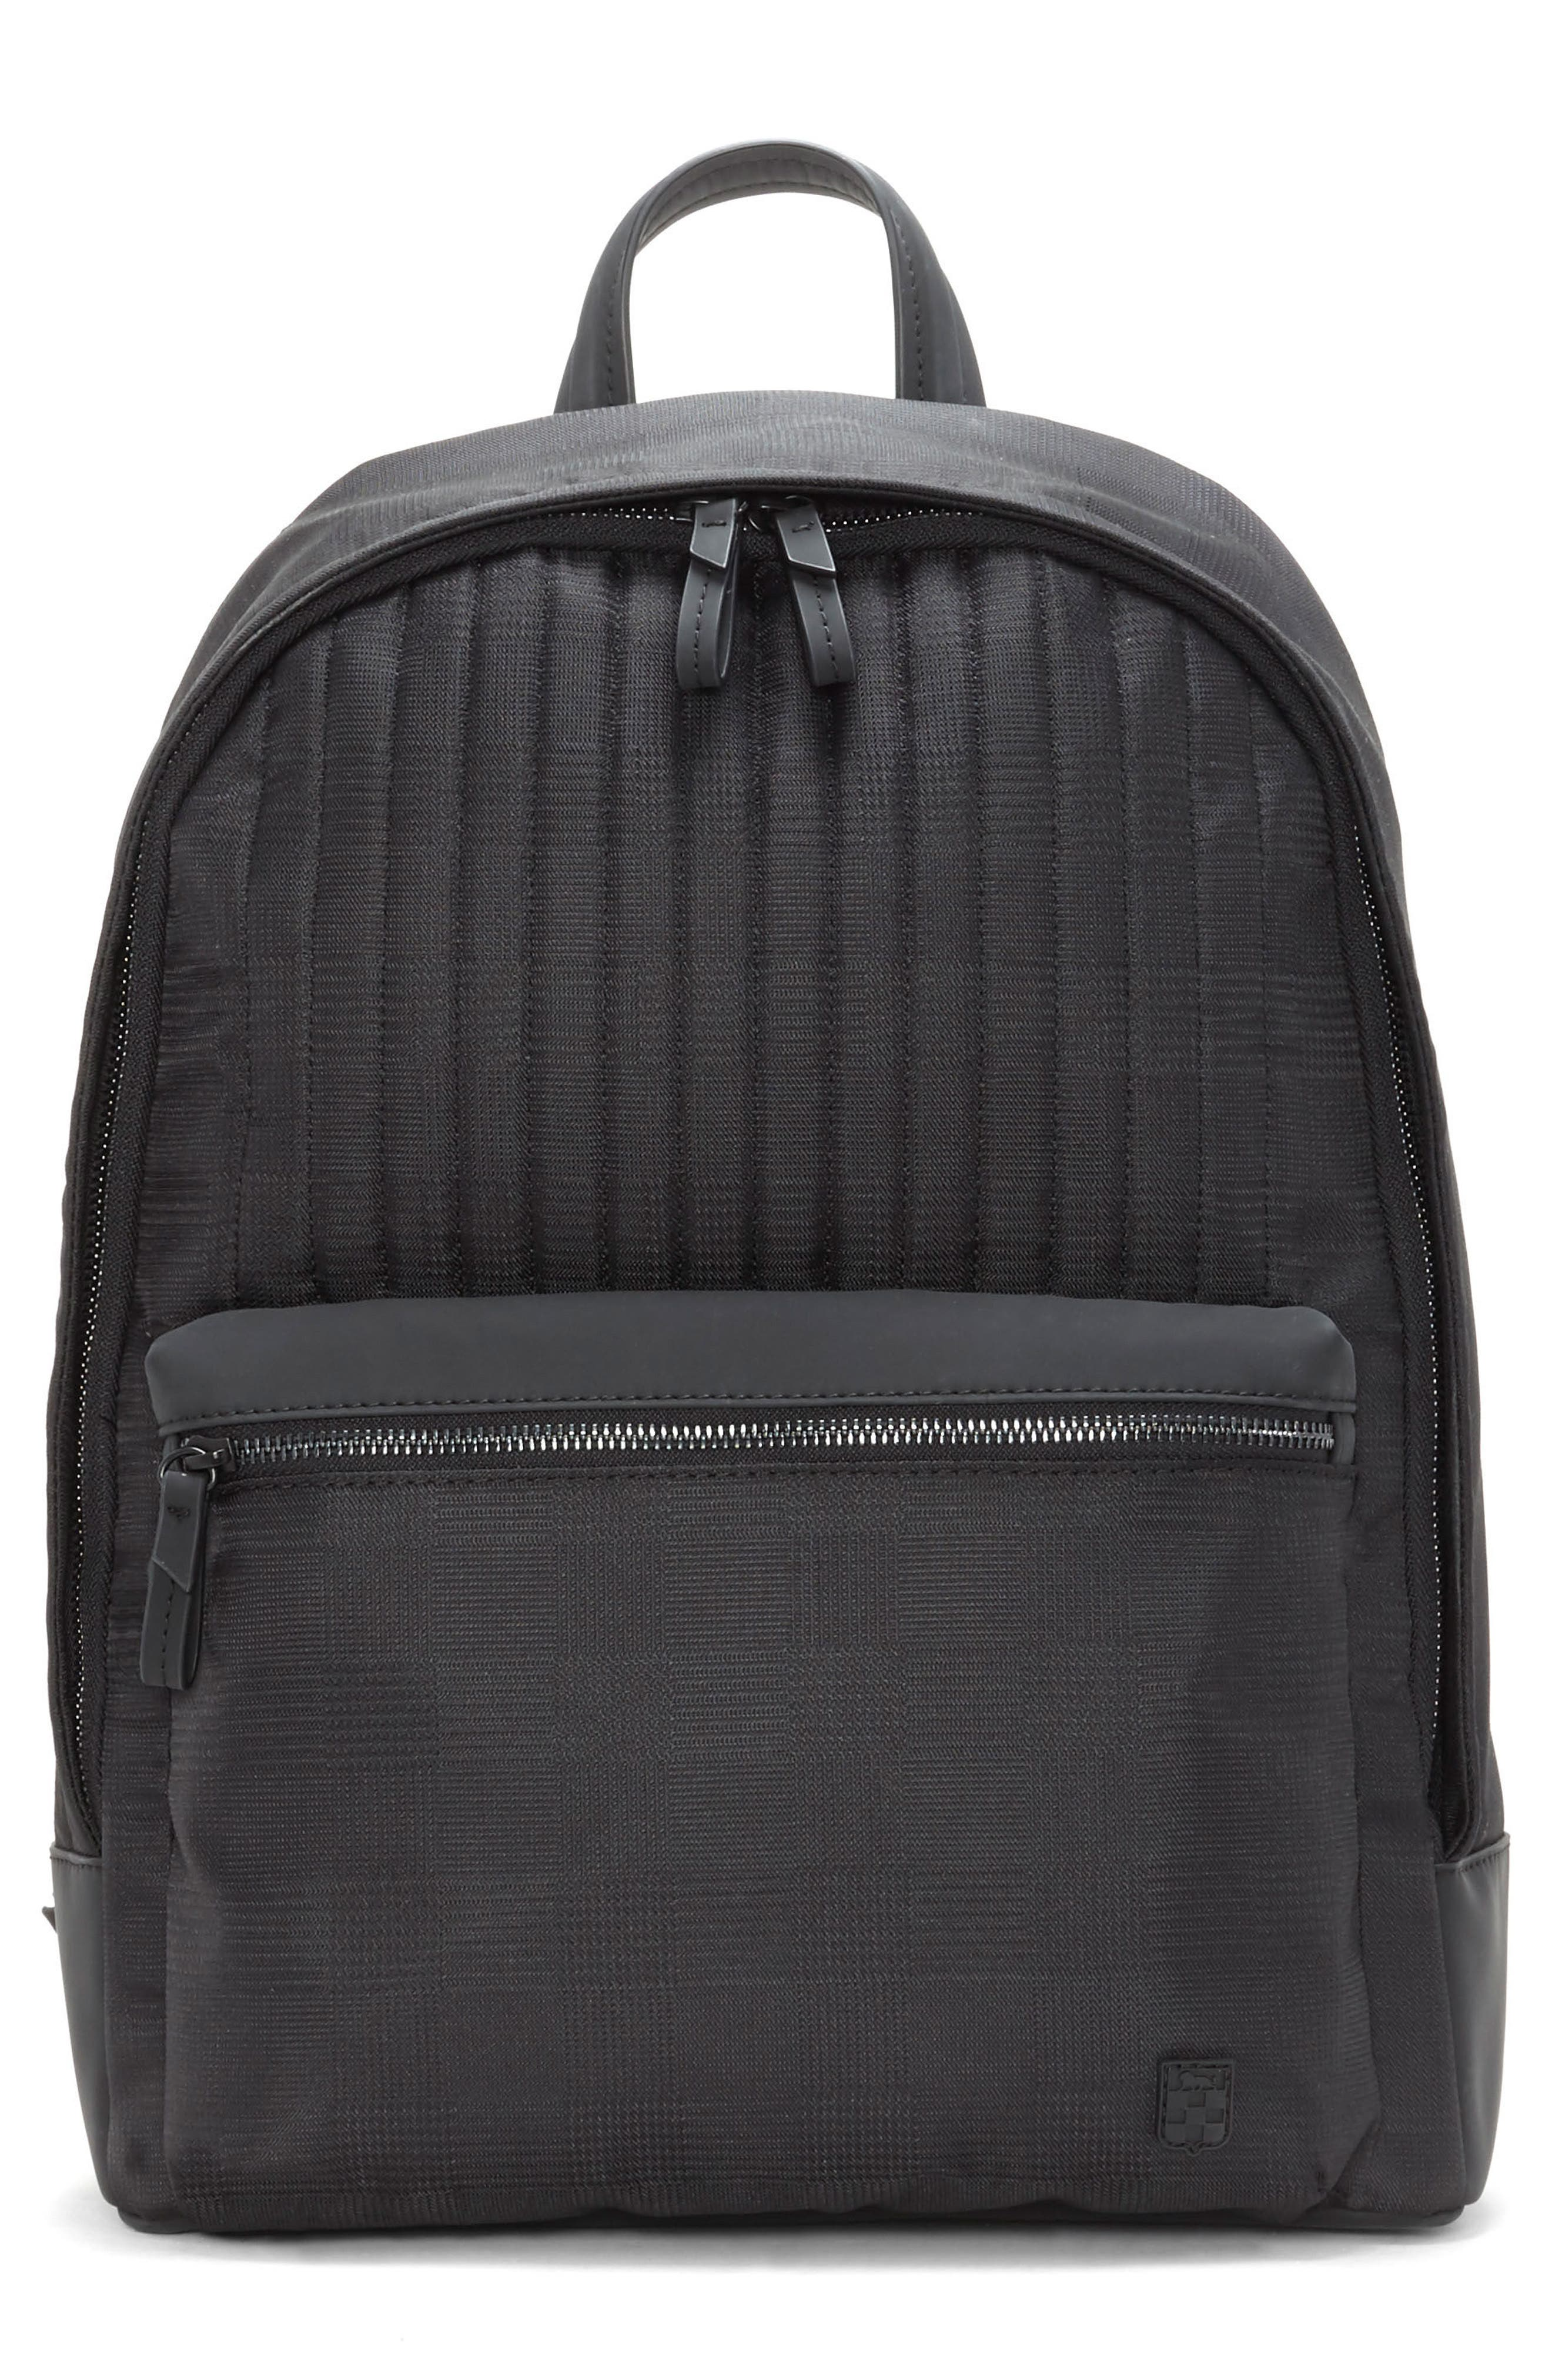 Race Backpack,                         Main,                         color, 001